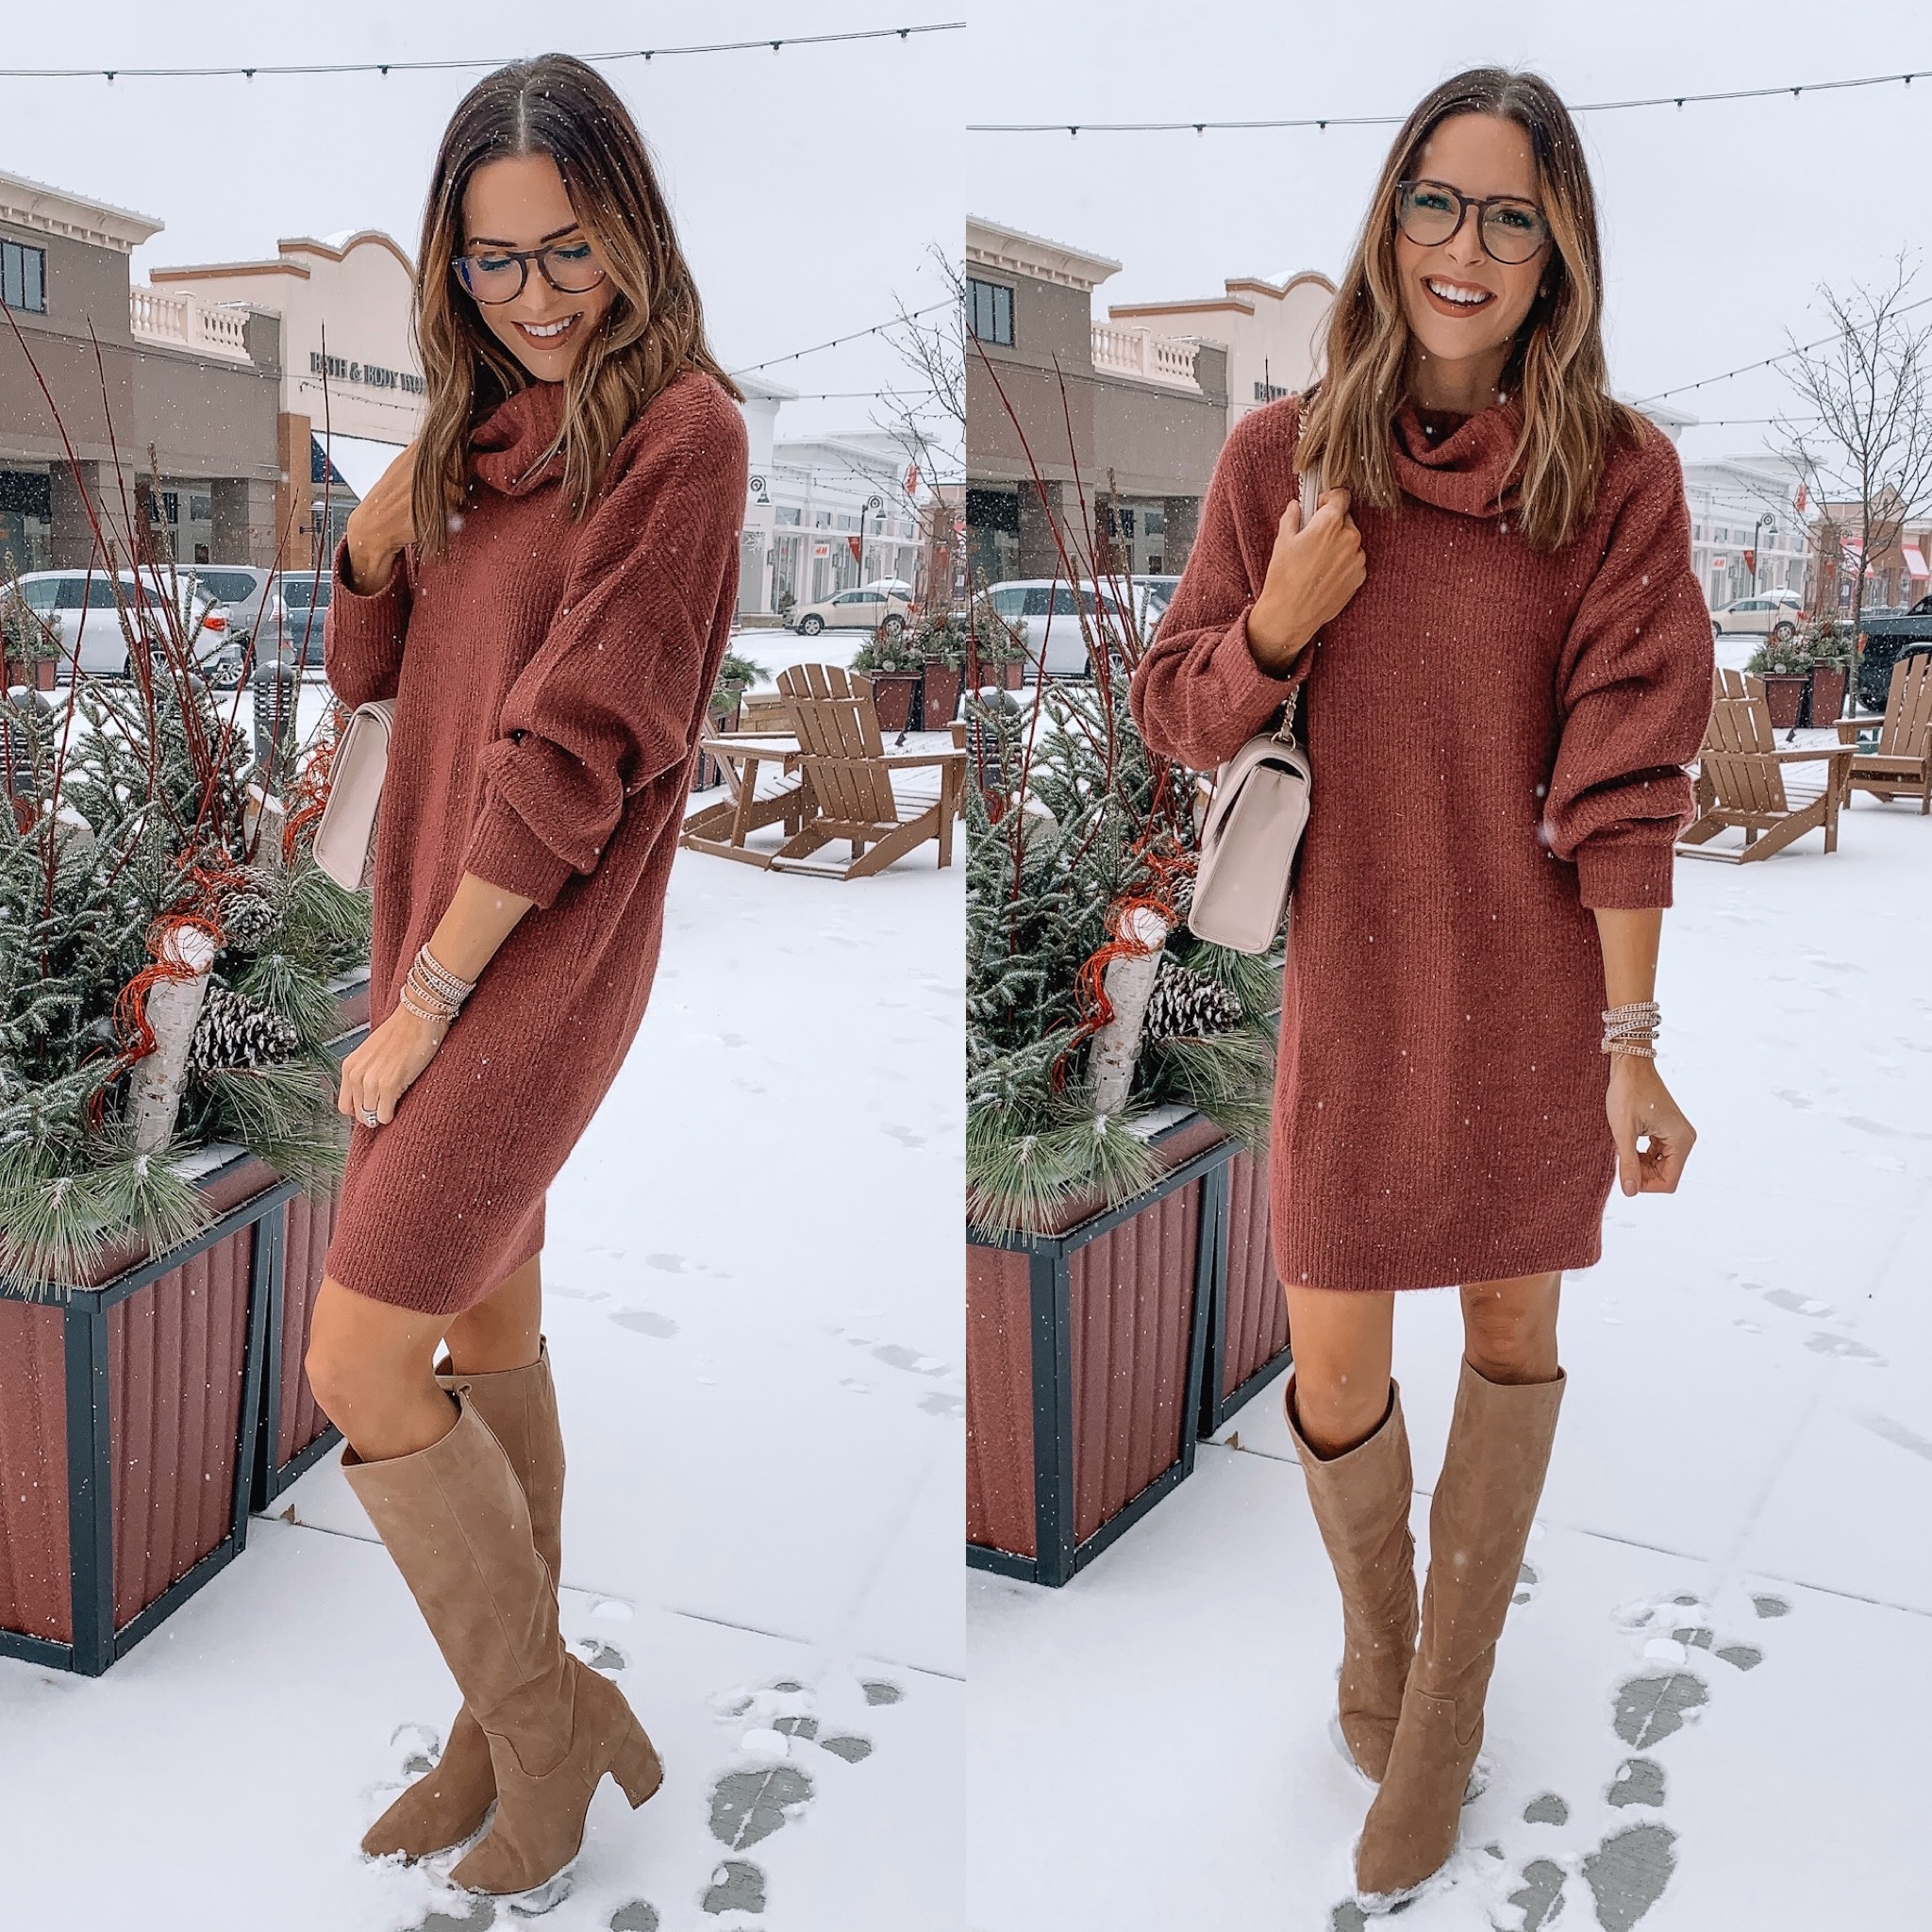 express Black Friday cyber Monday sale 2019. sweater dress, affordable fashion, winter fashion, holiday outfit, Minneapolis blogger